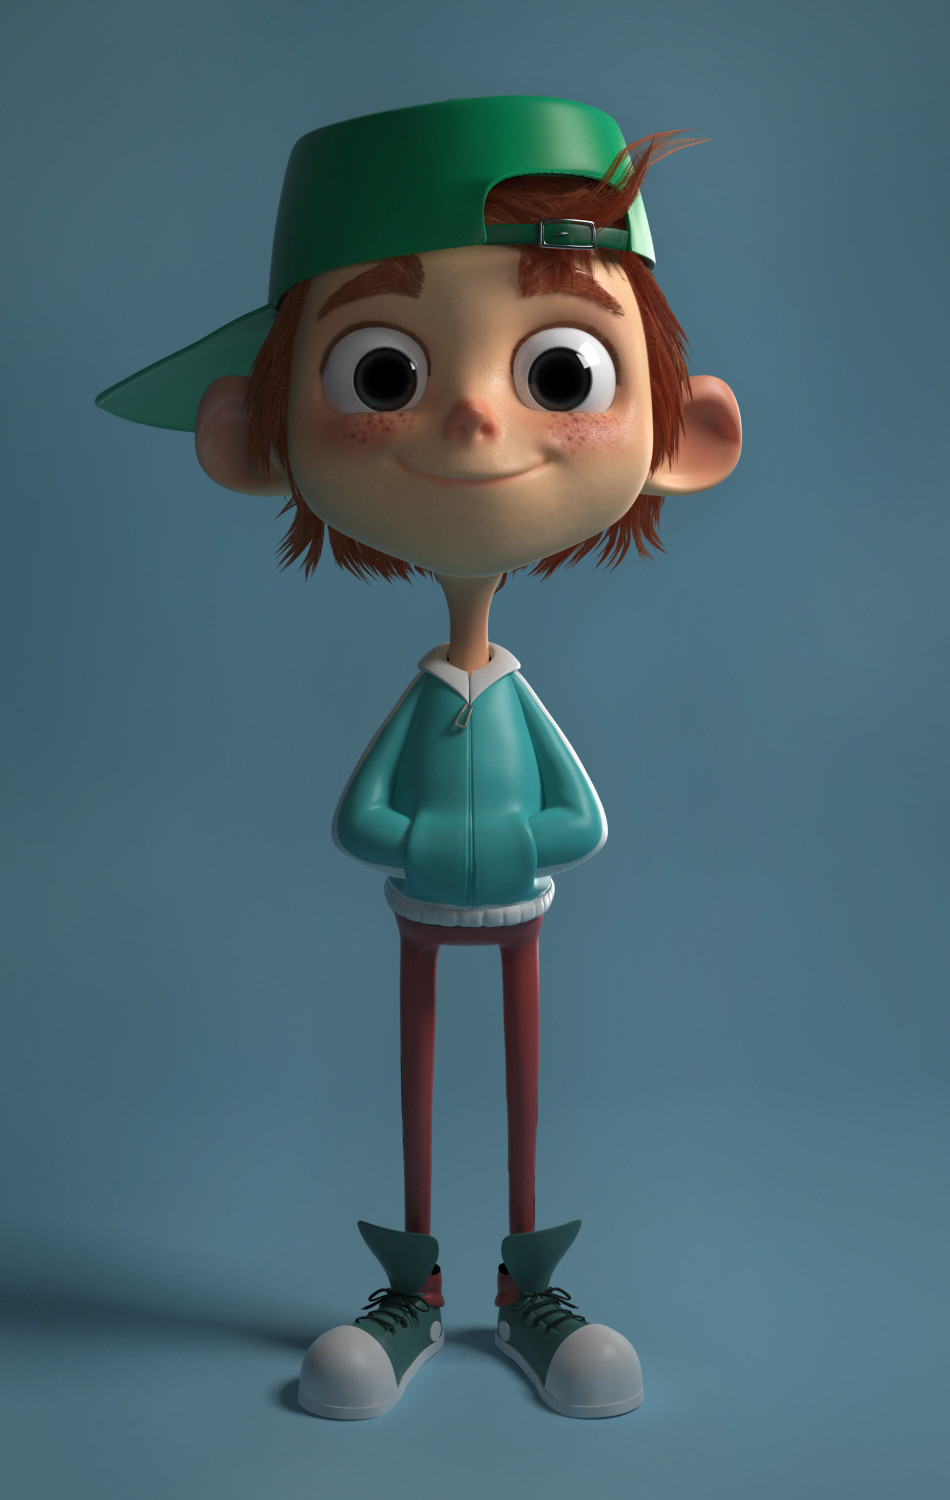 Character Design Little Boy : Artstation the boy anderson carlos